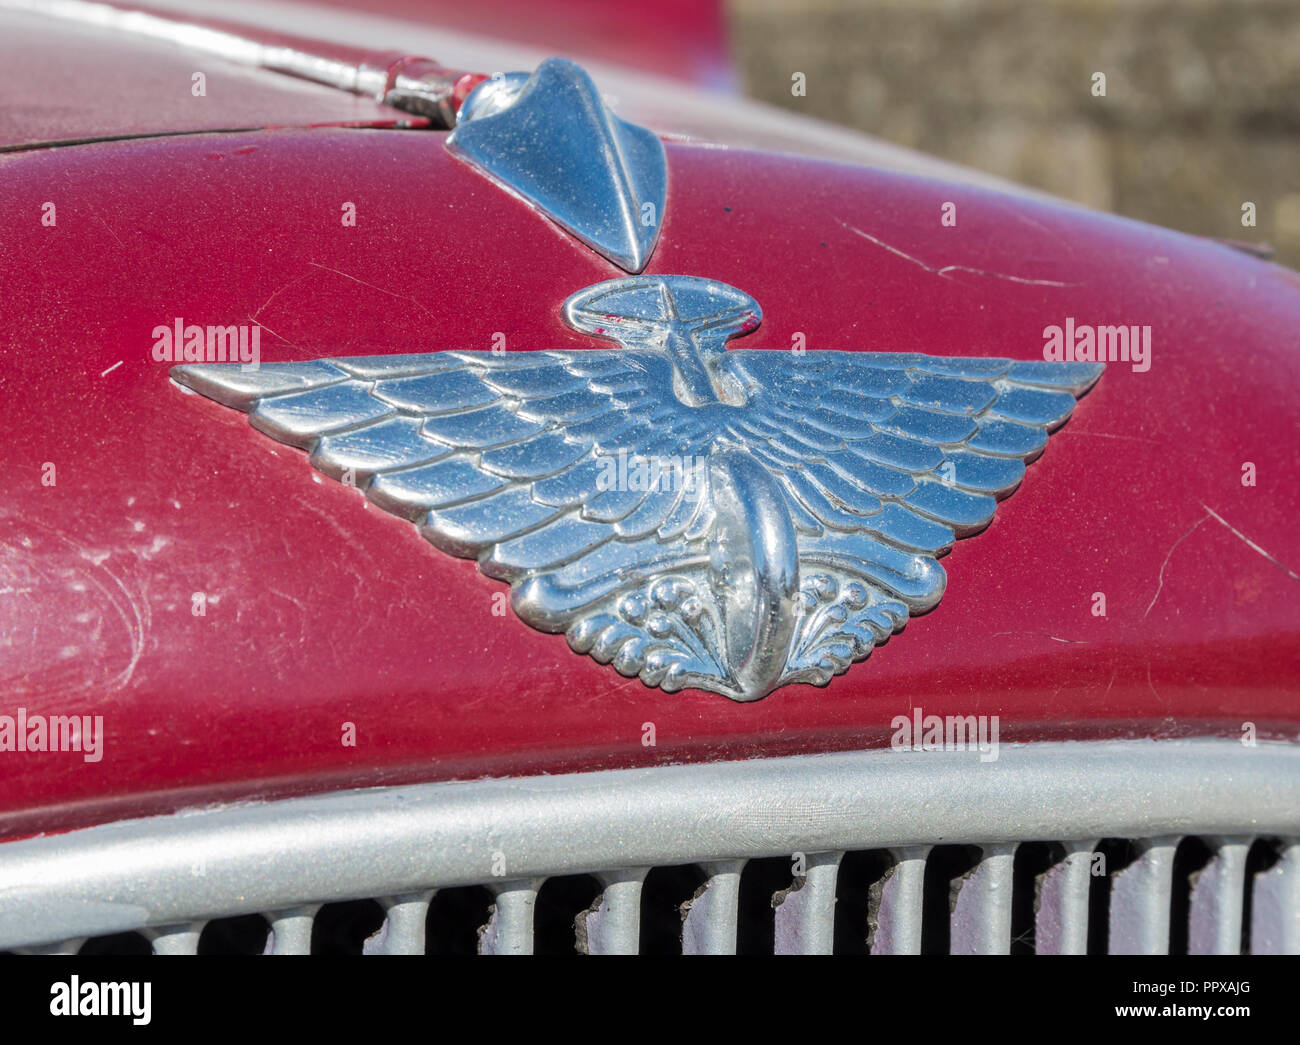 Austin badge from a 1930s car. - Stock Image